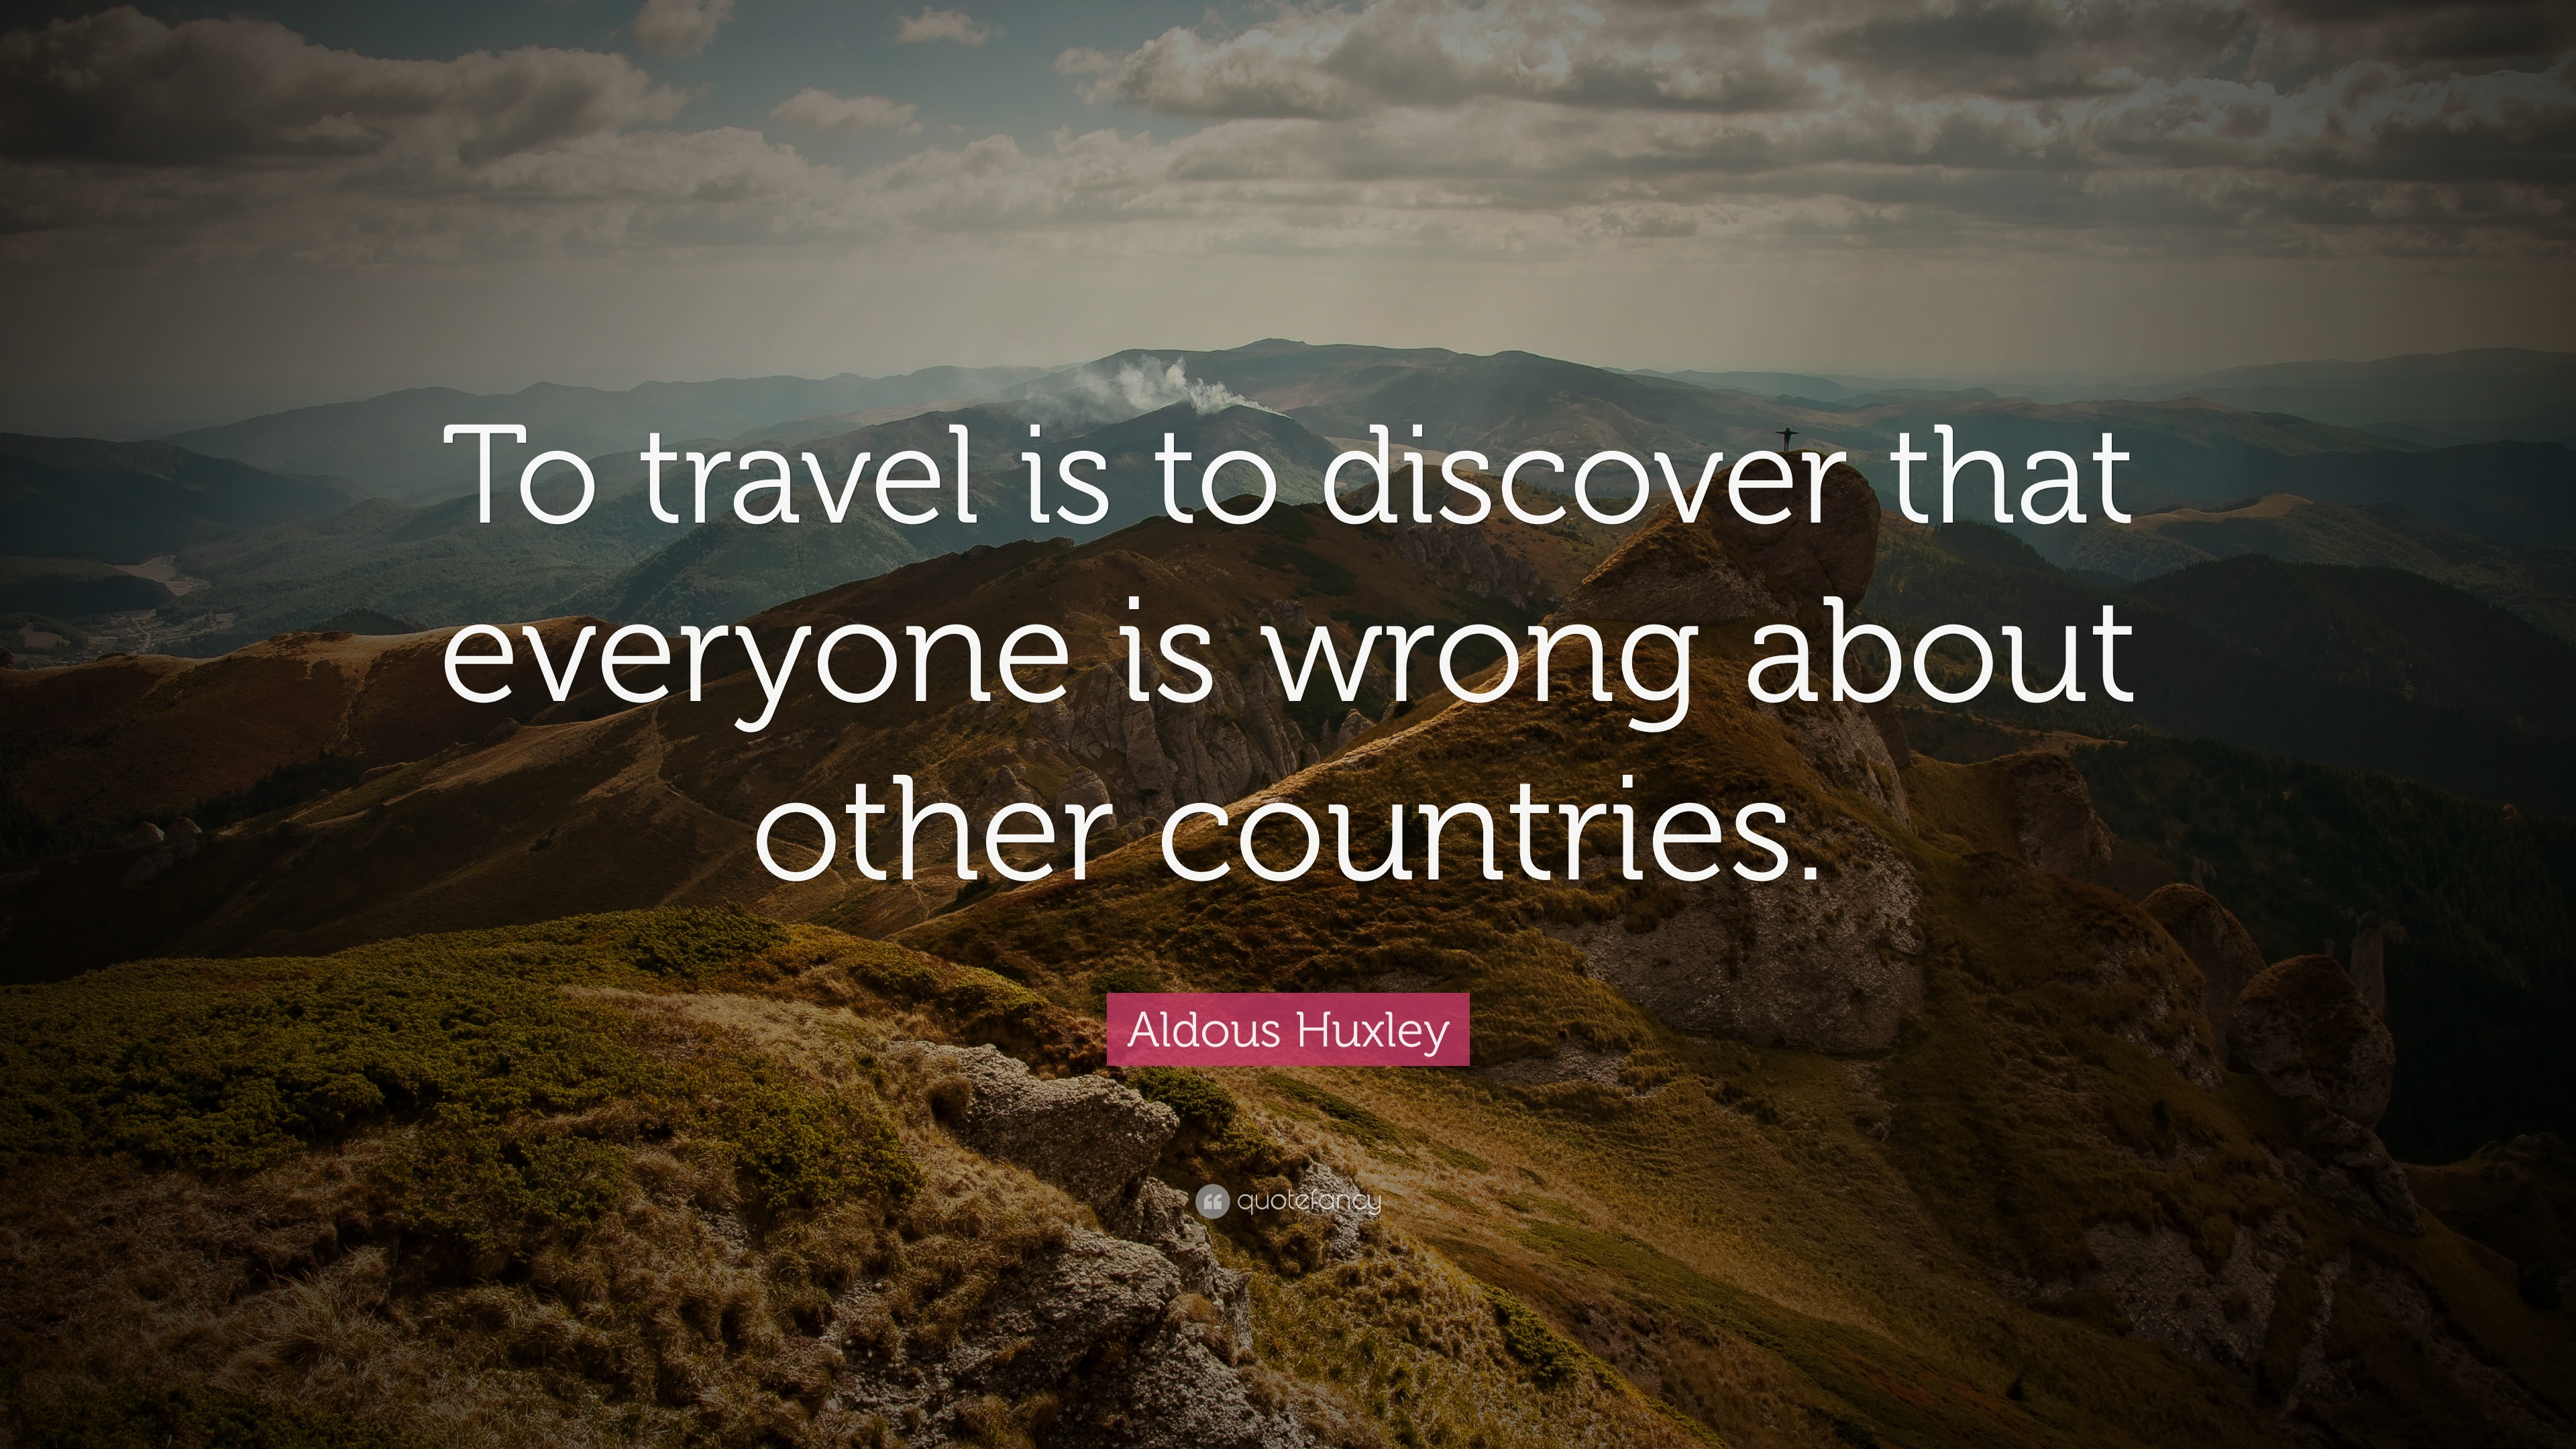 Travel Quotes To Is Discover That Everyone Wrong About Other Countries